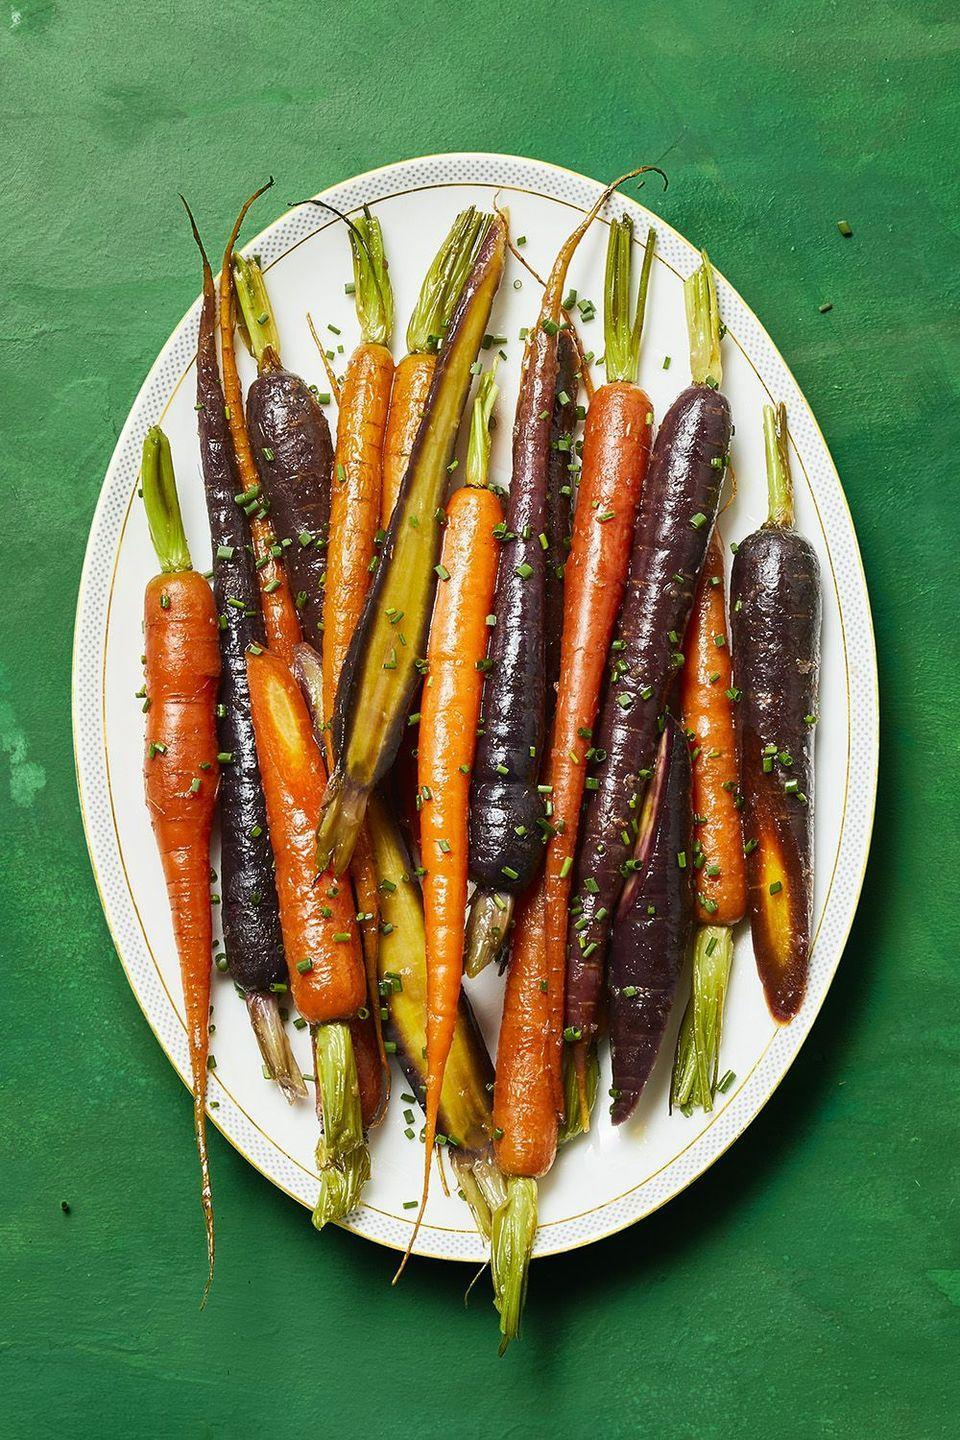 """<p>You shouldn't have to spend too much time on making carrots an appealing appetizer. That's why these honey glazed carrots give you the best of both the sweet and spicy worlds, and only take 20 minutes to make. </p><p><a href=""""https://www.womansday.com/food-recipes/a34146536/honey-glazed-carrots-recipe/"""" rel=""""nofollow noopener"""" target=""""_blank"""" data-ylk=""""slk:Get the recipe for Honey Glazed Carrots."""" class=""""link rapid-noclick-resp""""><strong><em>Get the recipe for Honey Glazed Carrots.</em></strong></a></p>"""